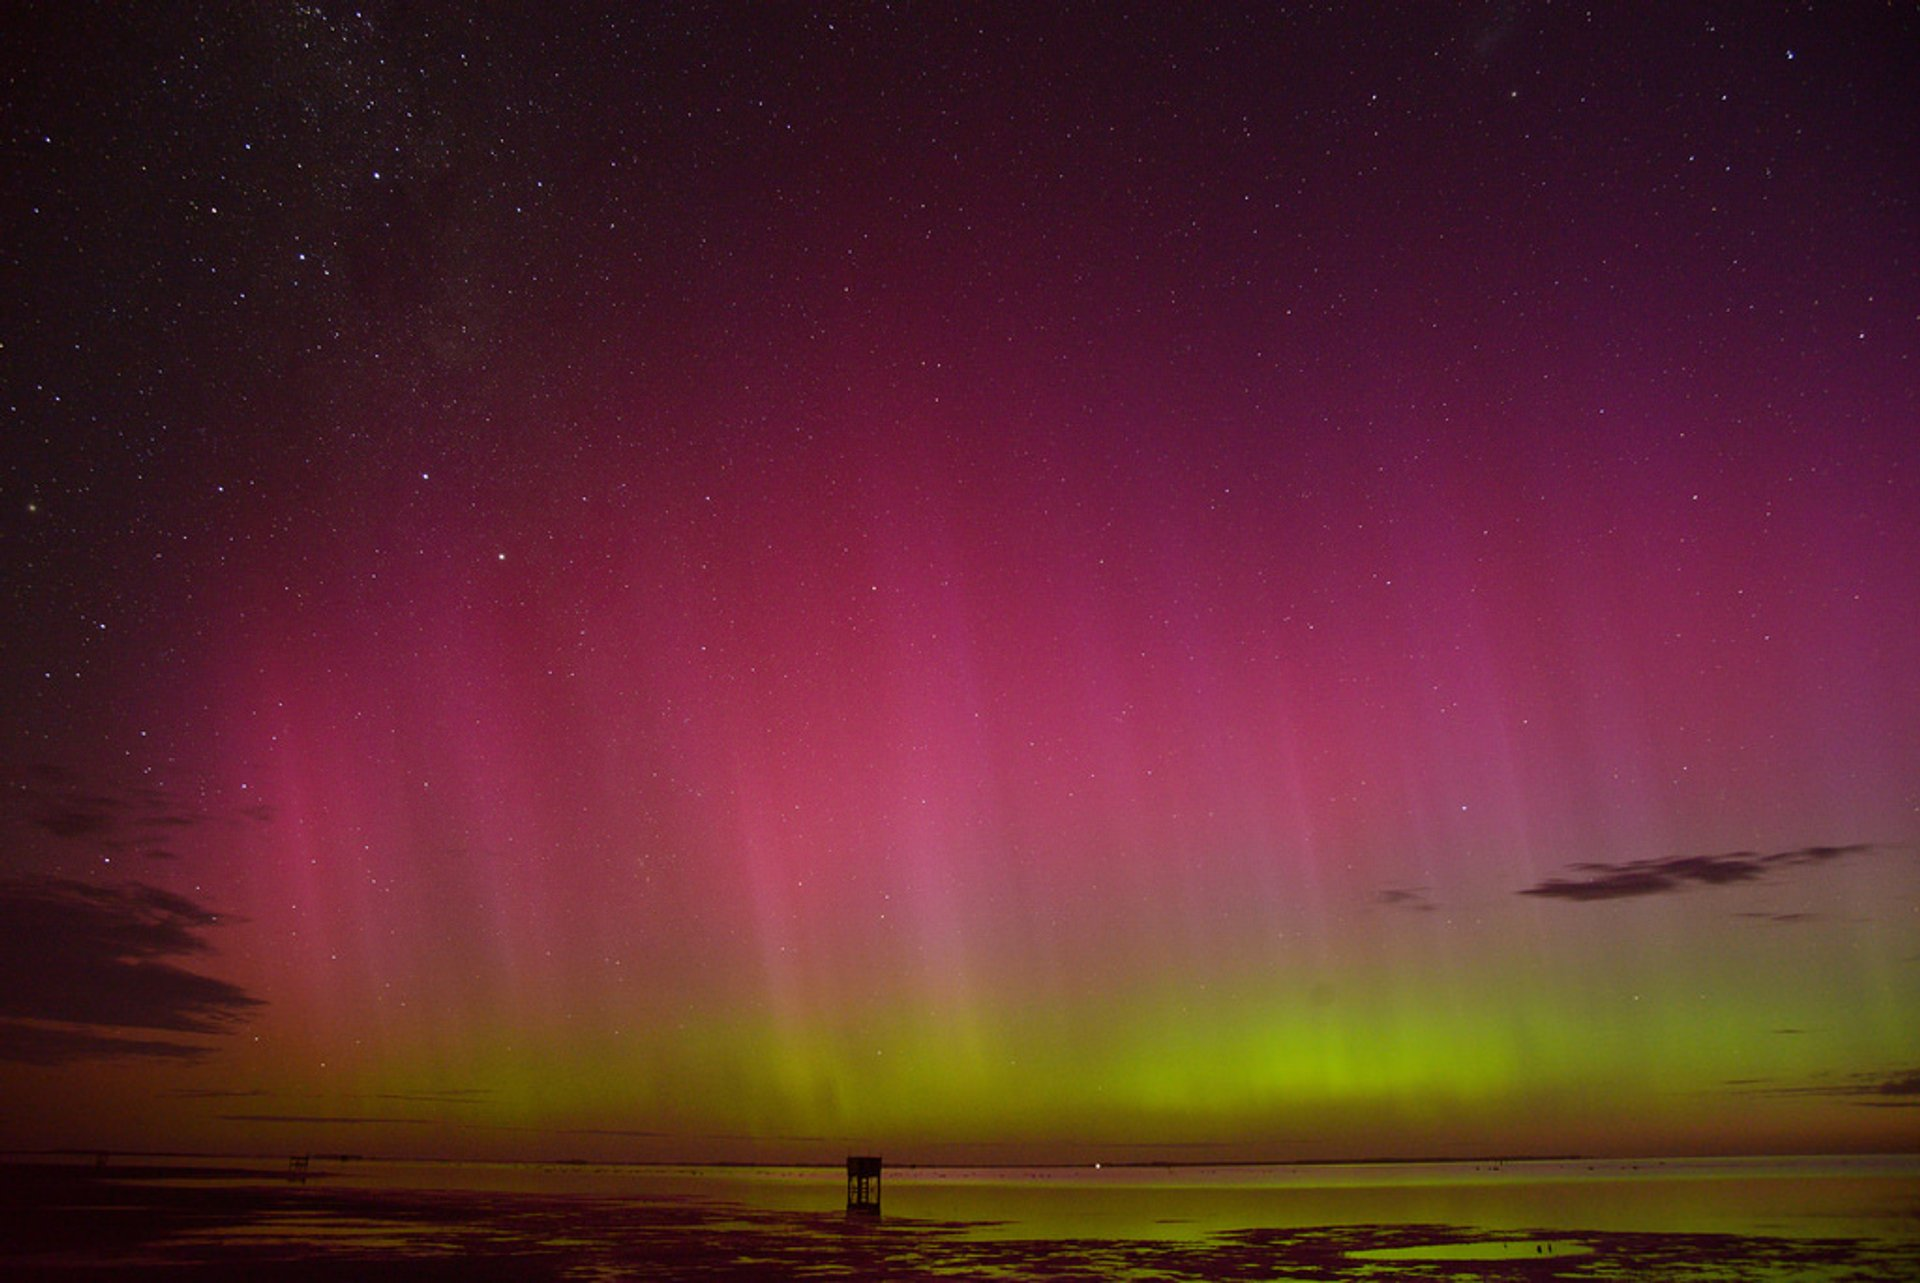 Aurora Australis in New Zealand 2020 - Best Time